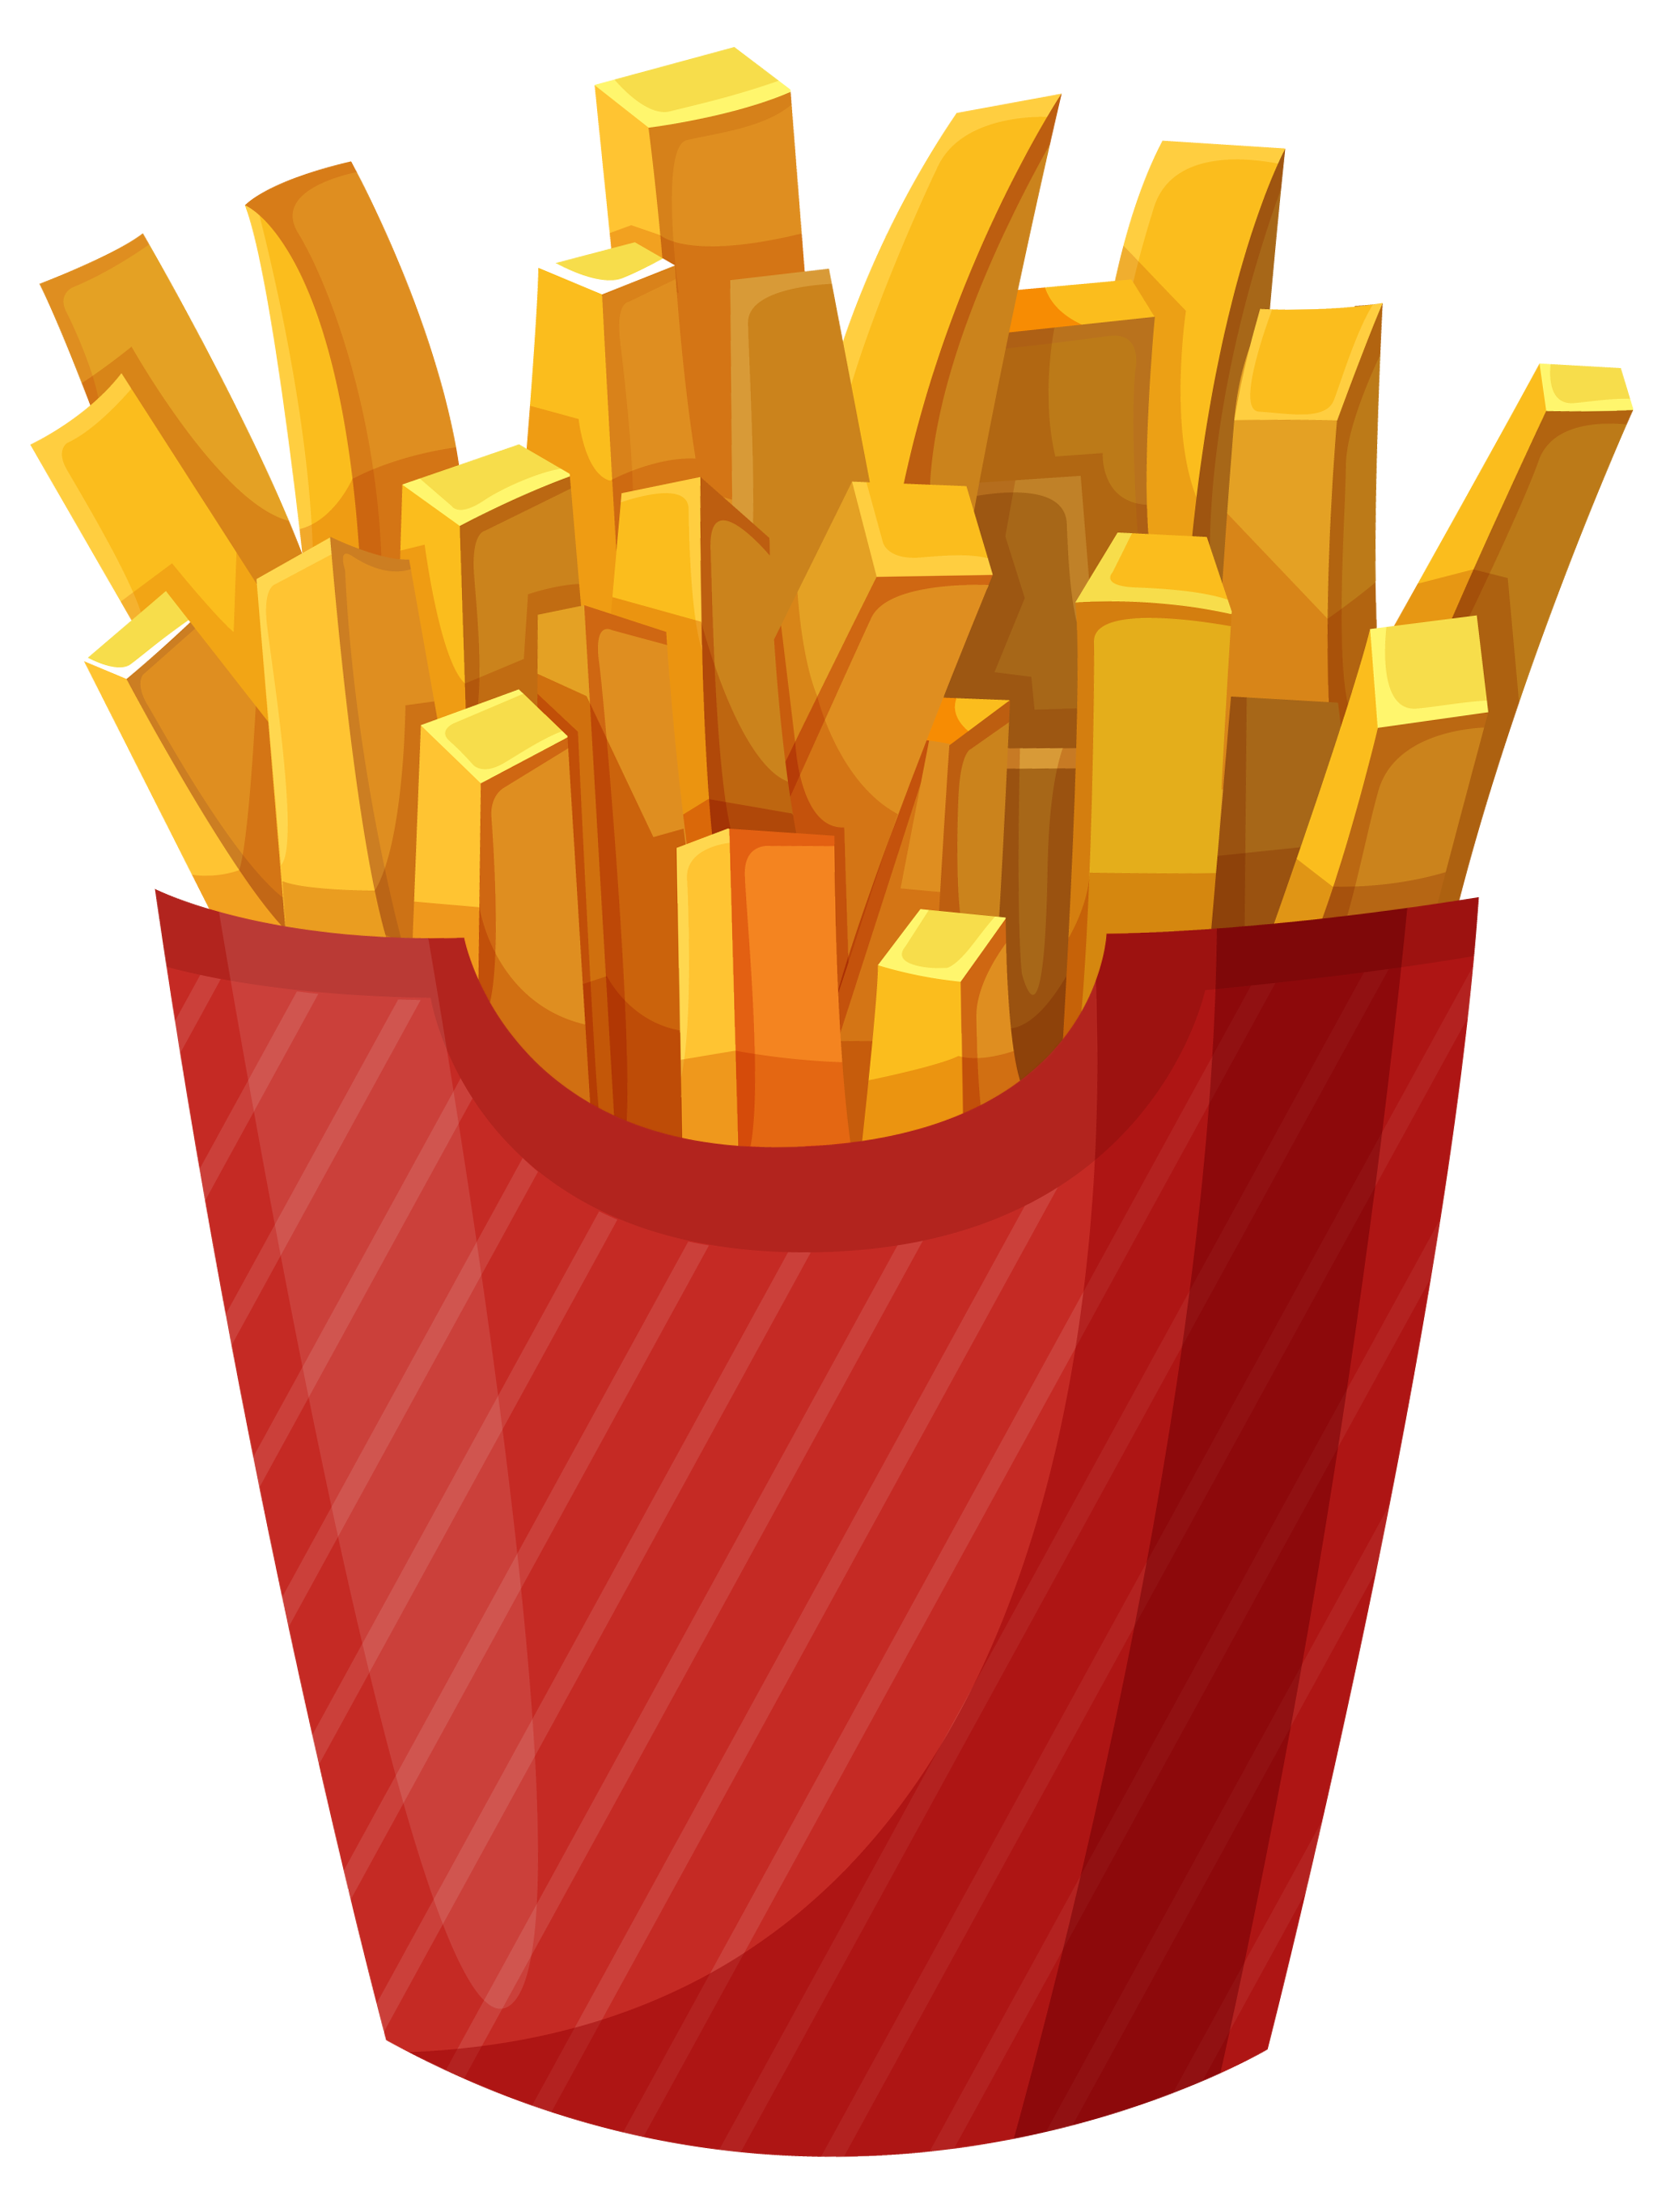 Png image purepng free. Fries clipart